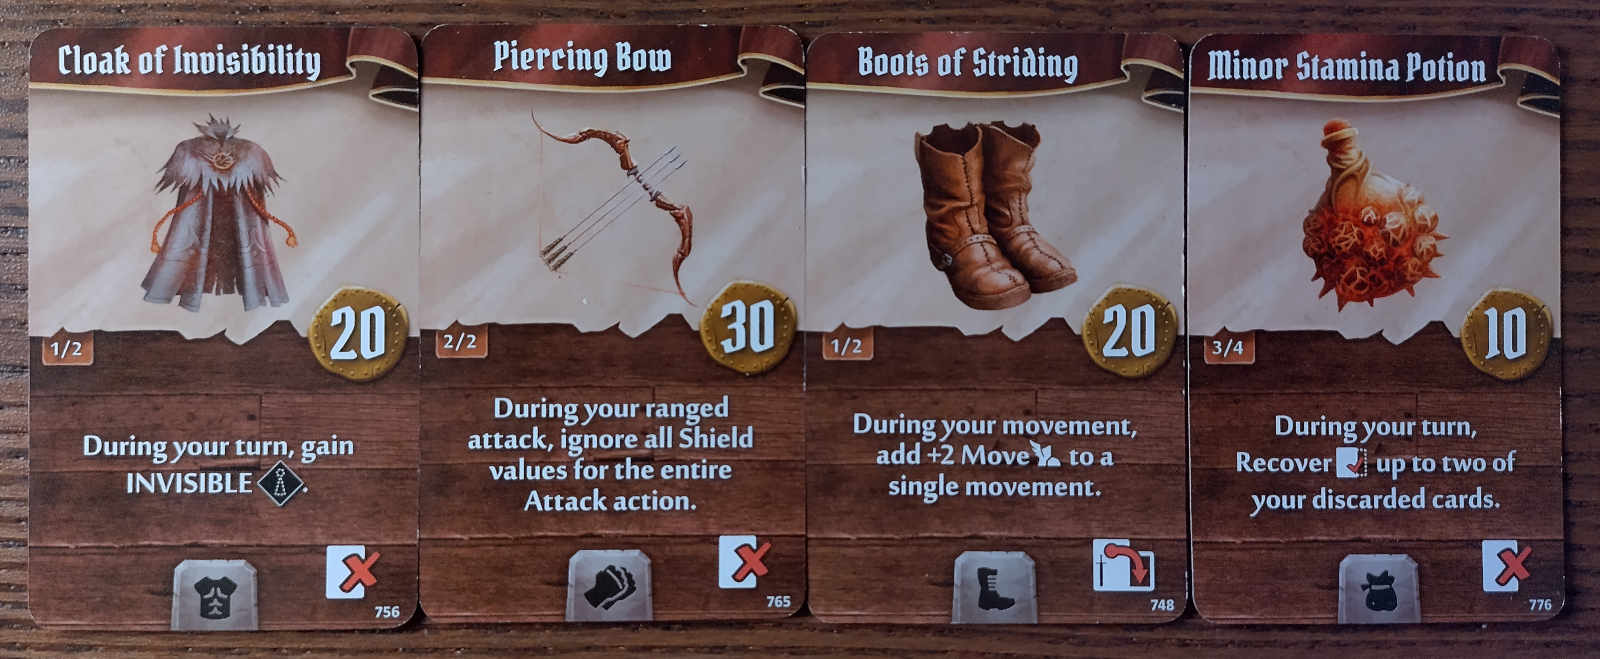 Summoner starting items - Cloak of Invisibility, Piercing Bow, Boots of Striding, Minor Stamina Potion.